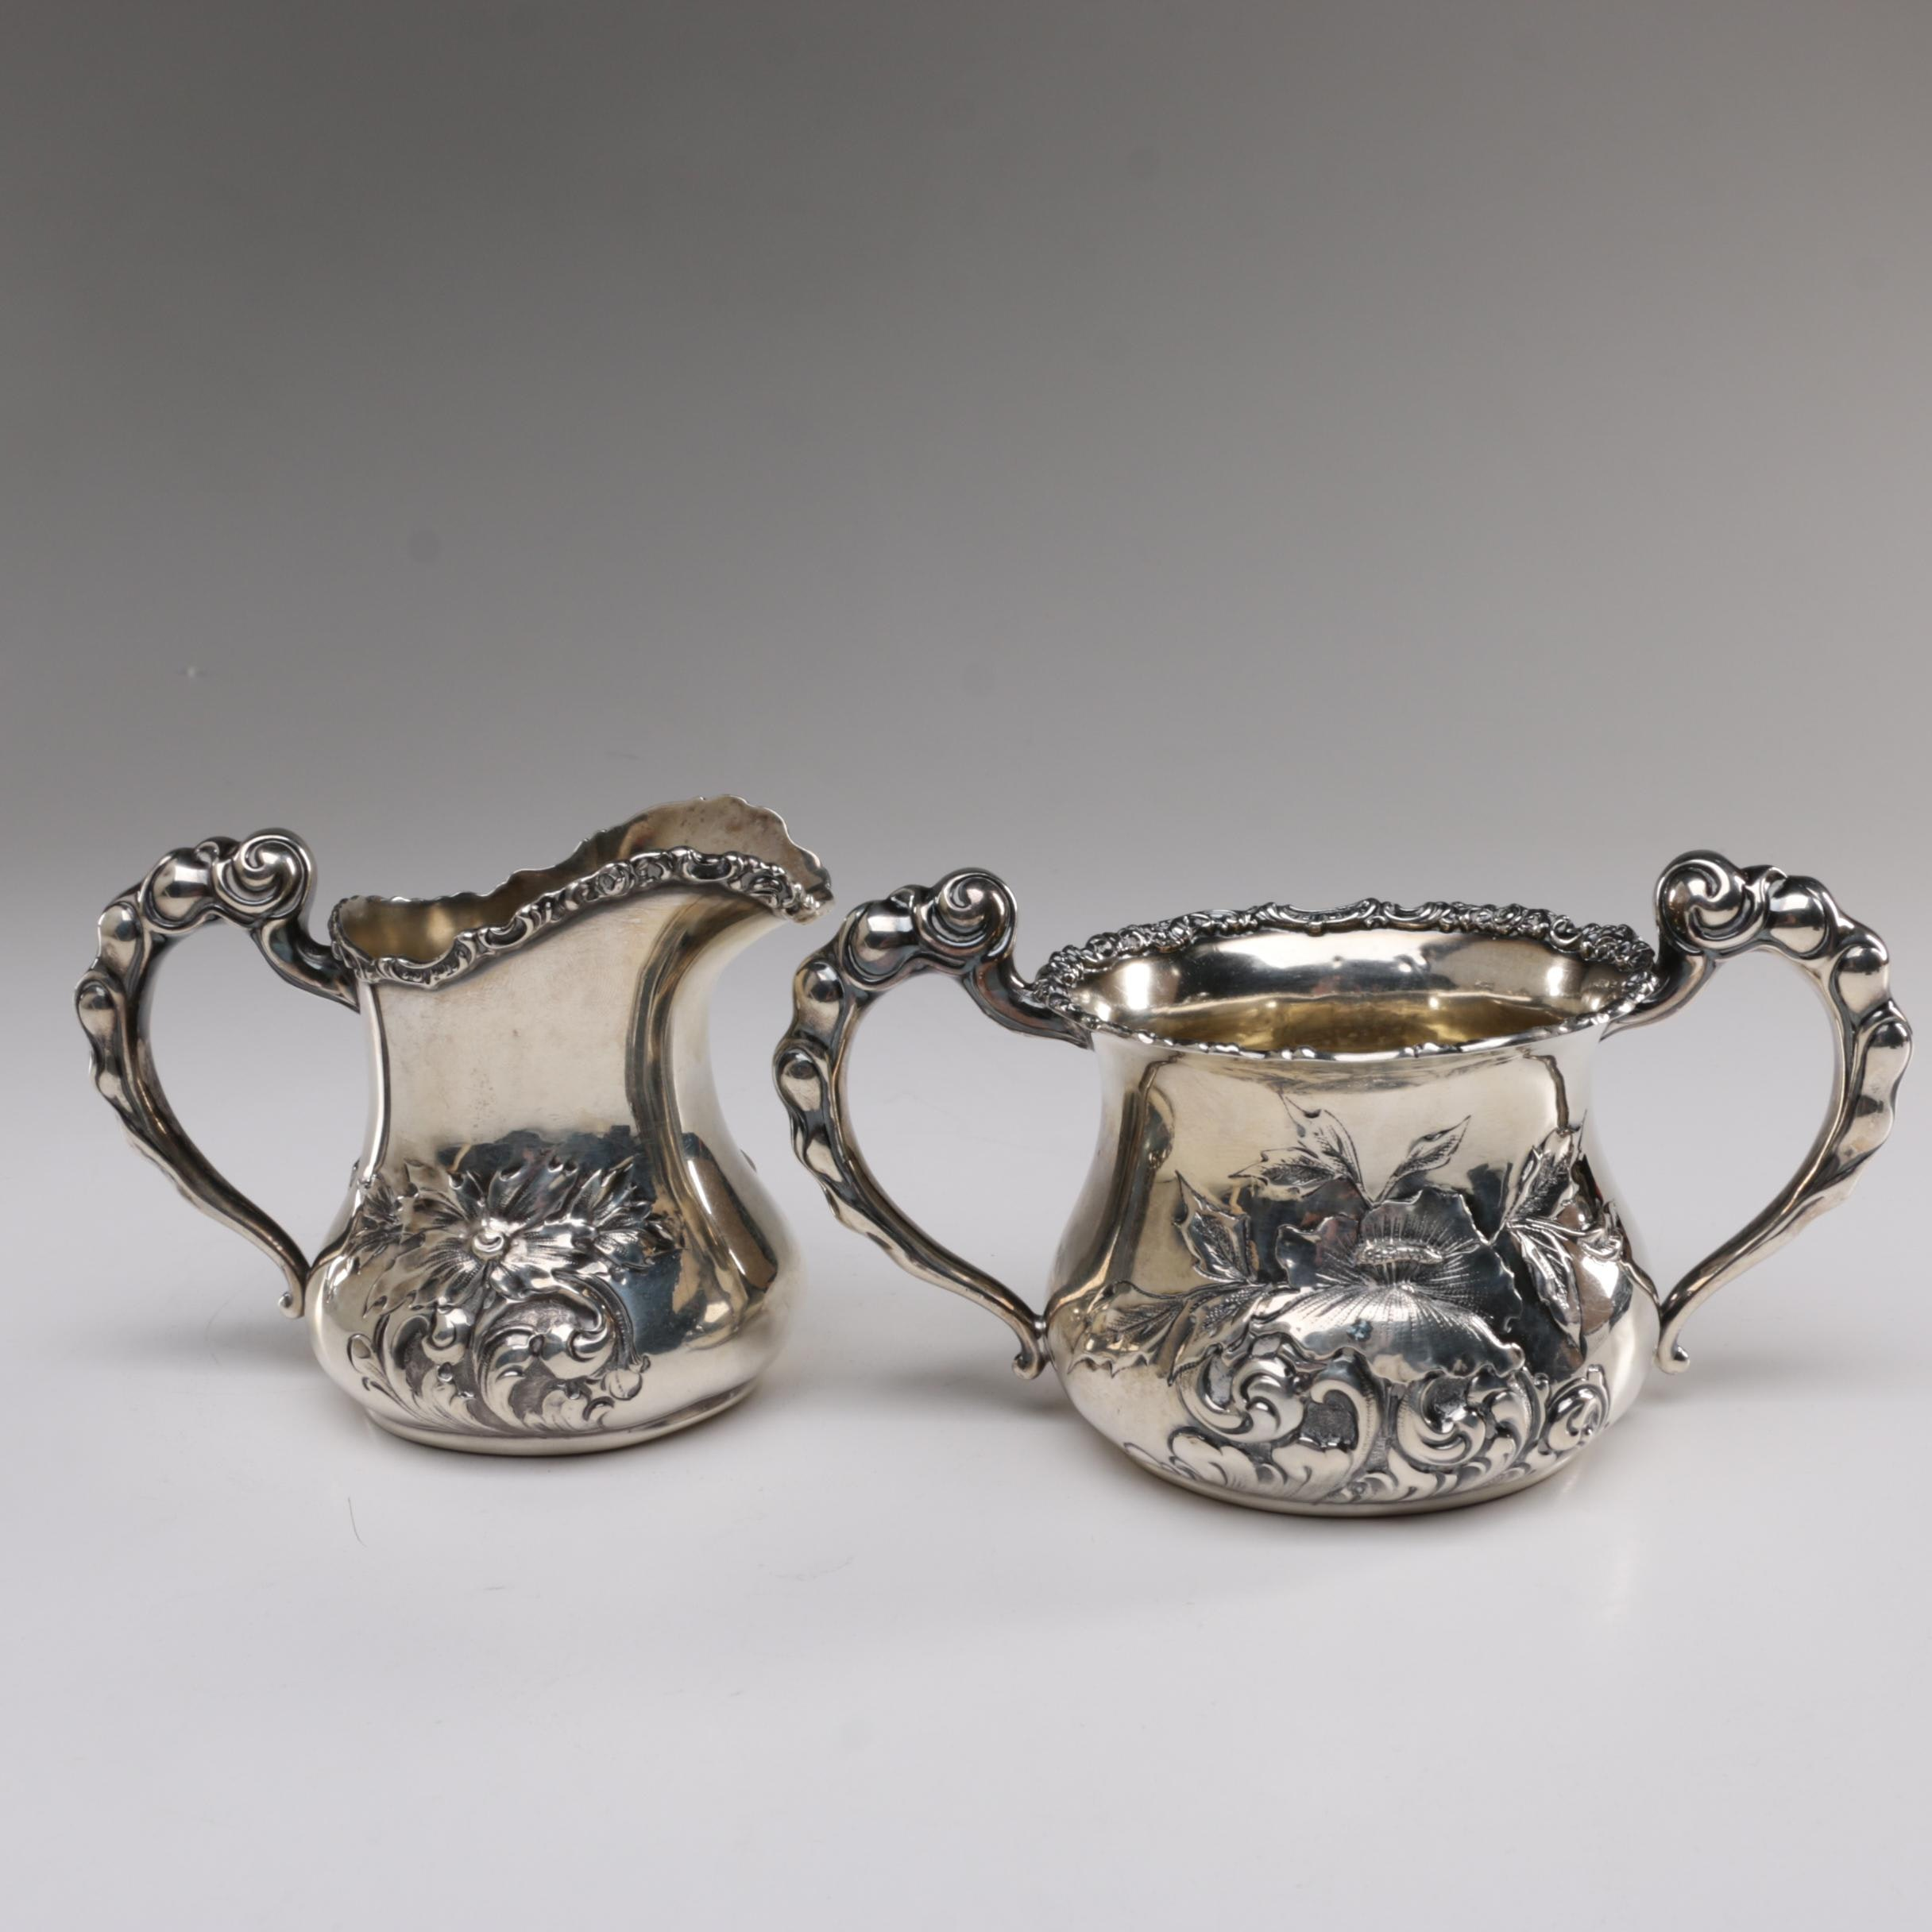 International Silver Co. Sterling Creamer and Open Sugar Bowl, Early 20th C.